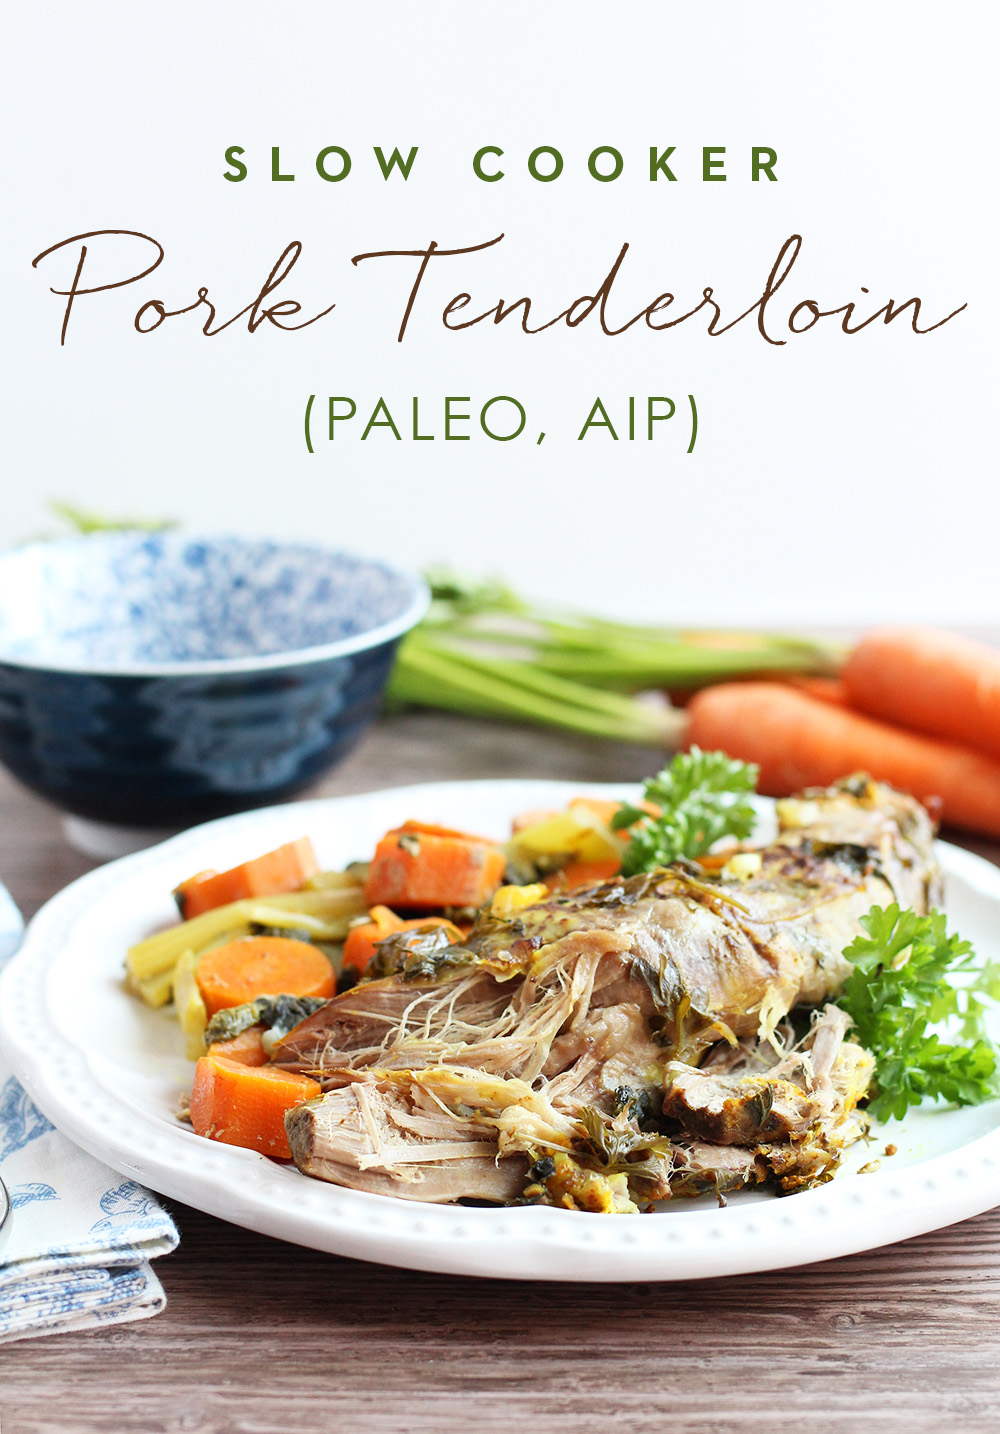 Easy Slow Cooker Pork Tenderloin, Paleo and AIP